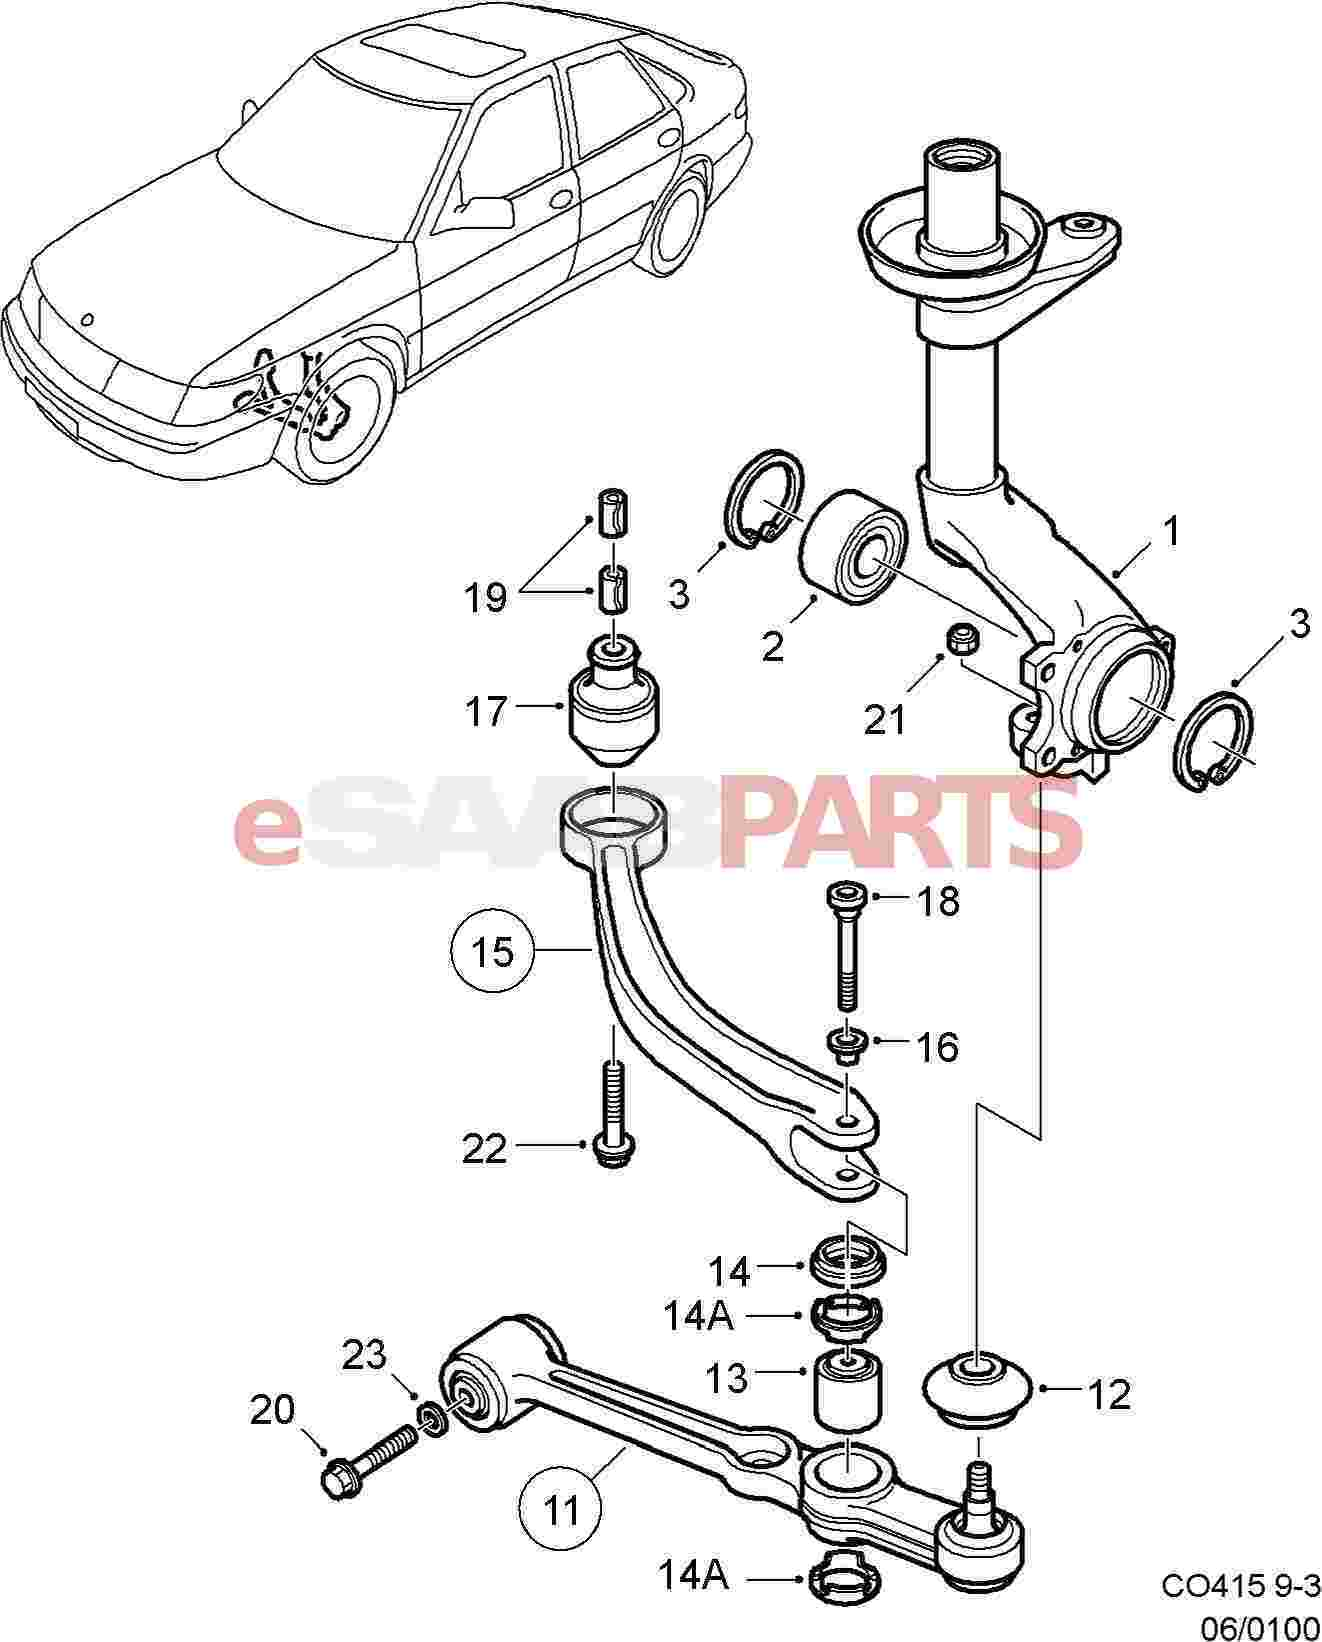 saab 900 ke parts diagram  u2022 wiring diagram for free